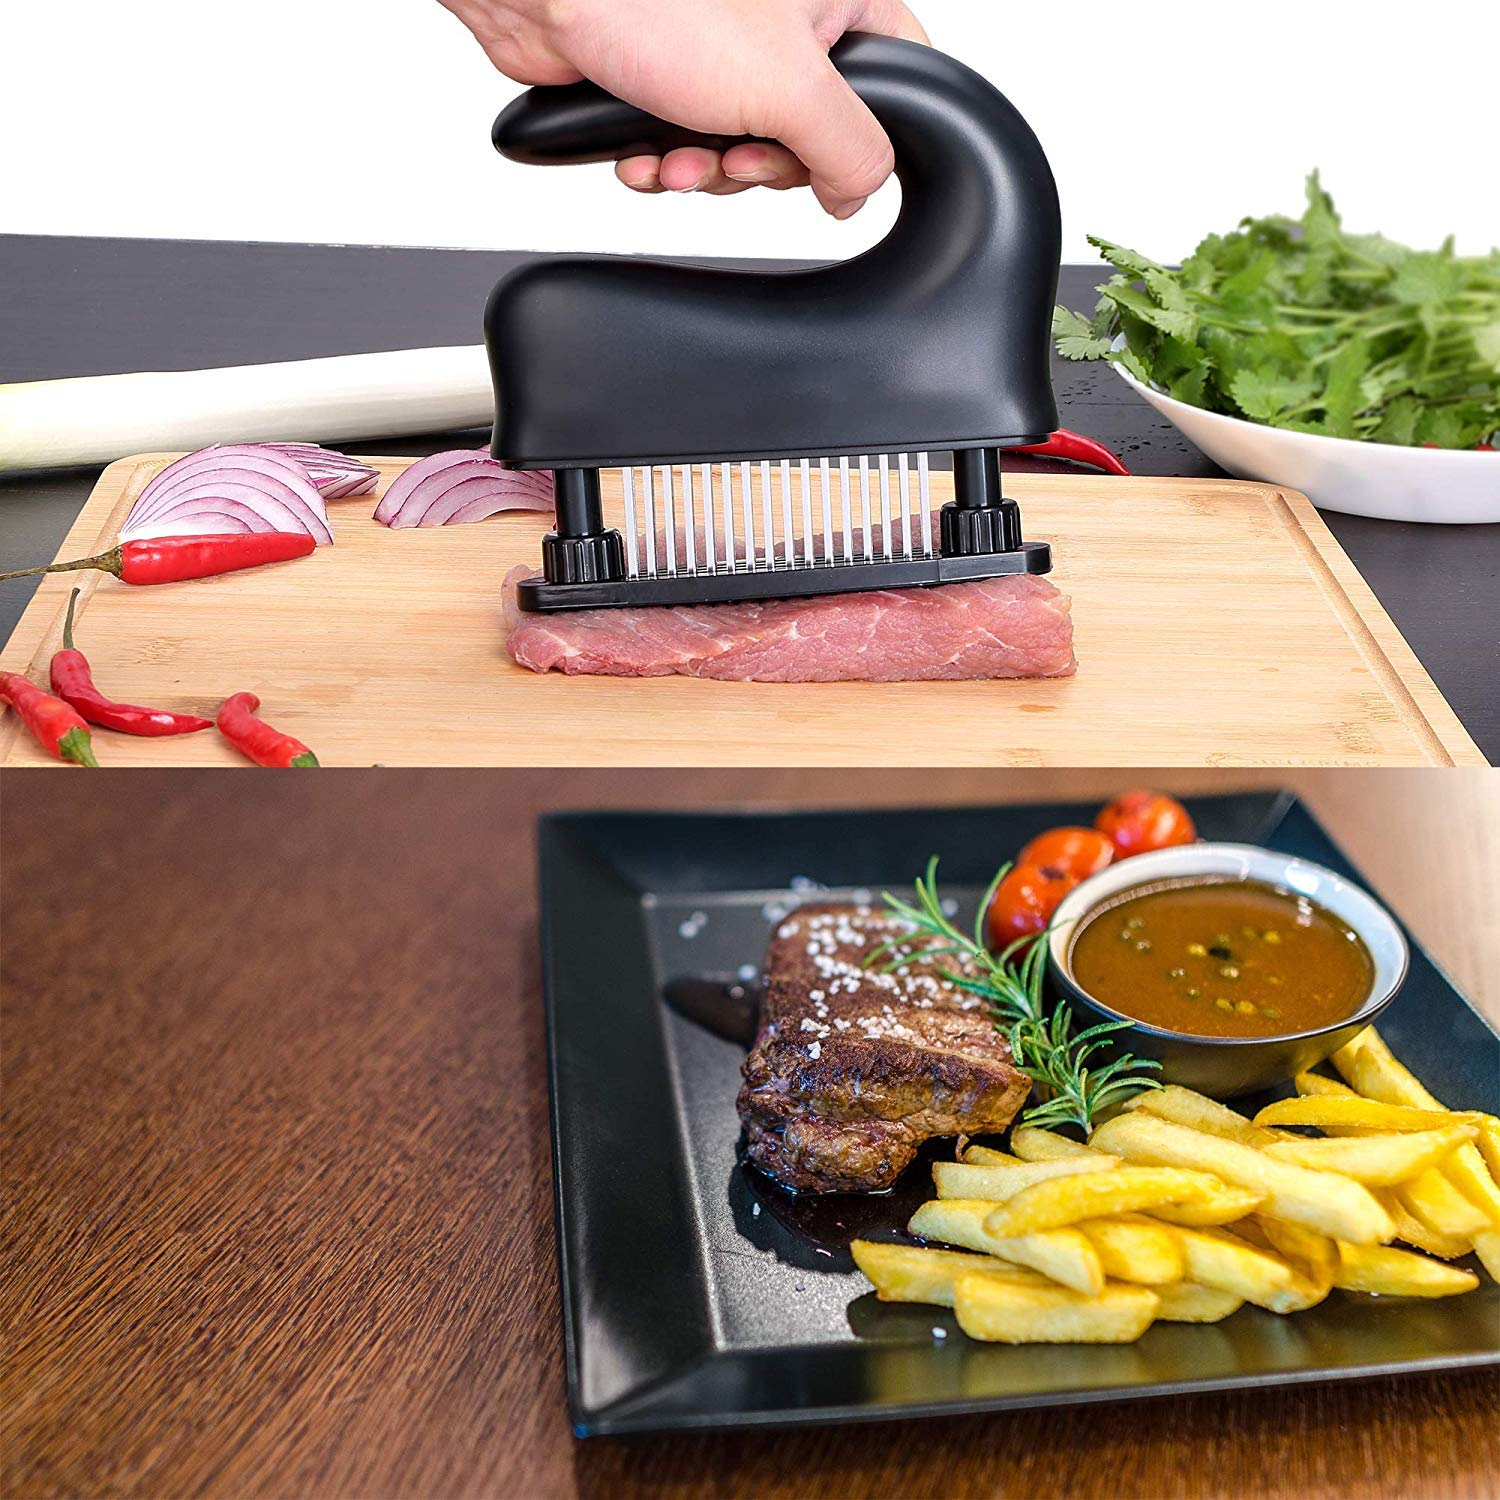 48 Stainless Steel Ultra Sharp Needle Blade Kitchen Tenderizer for Tenderizing Steak Marinade /& Flavor Maximizer Kitchen Accessories Cykelar Meat Tenderizer Tool with Holder Beef Black